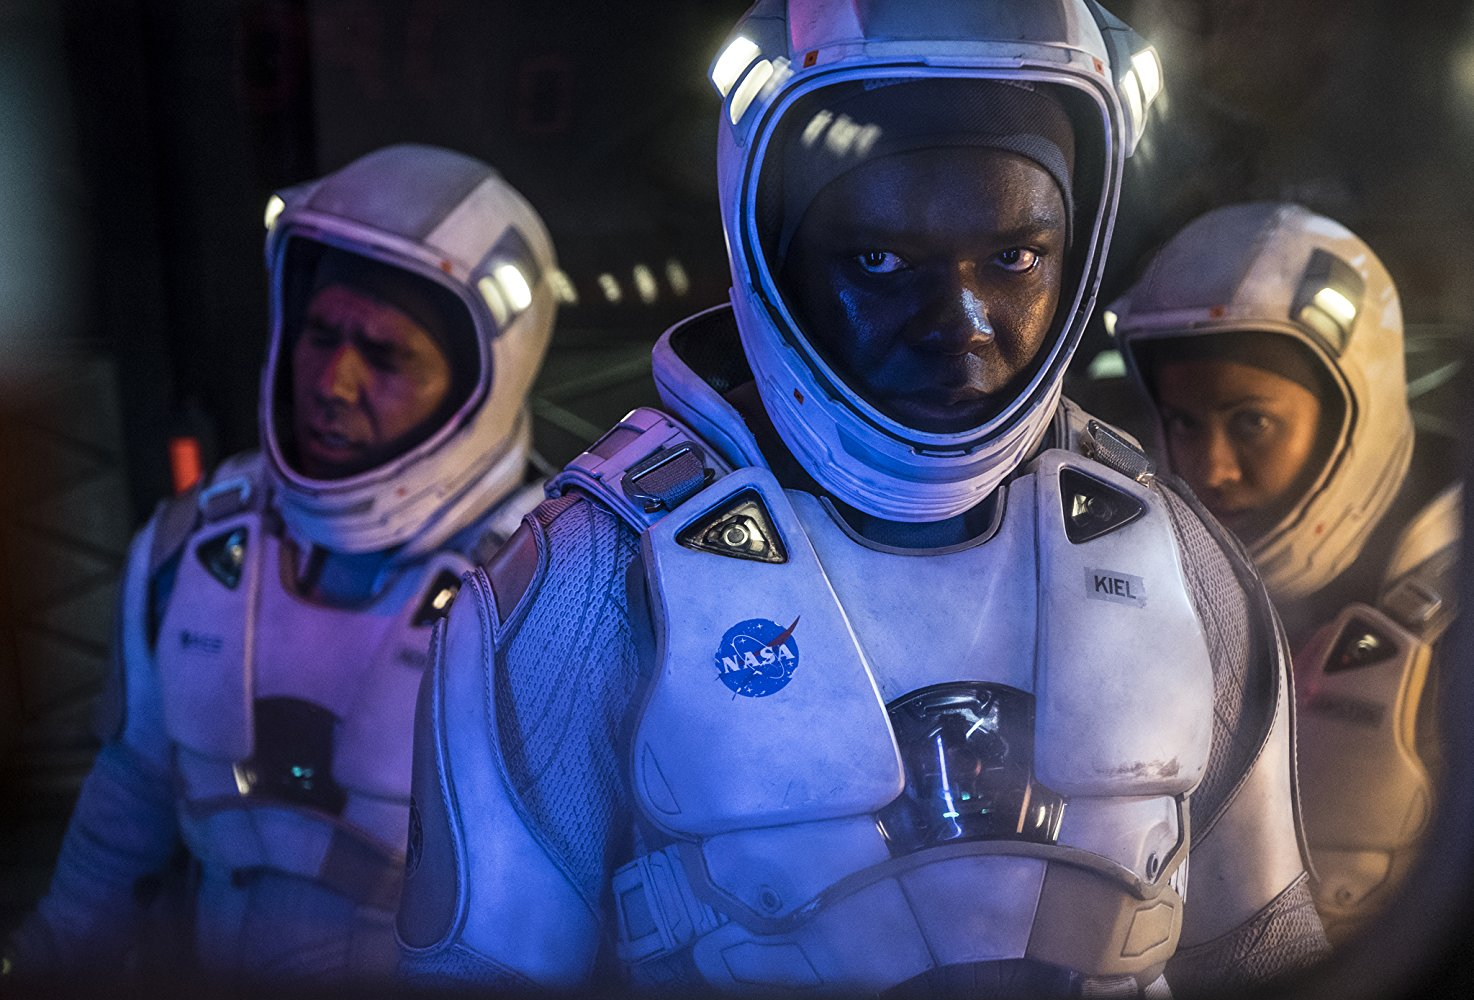 John Ortiz, David Oyelowo, and Gugu Mbatha-Raw as astronauts in THE CLOVERFIELD PARADOX (2018)